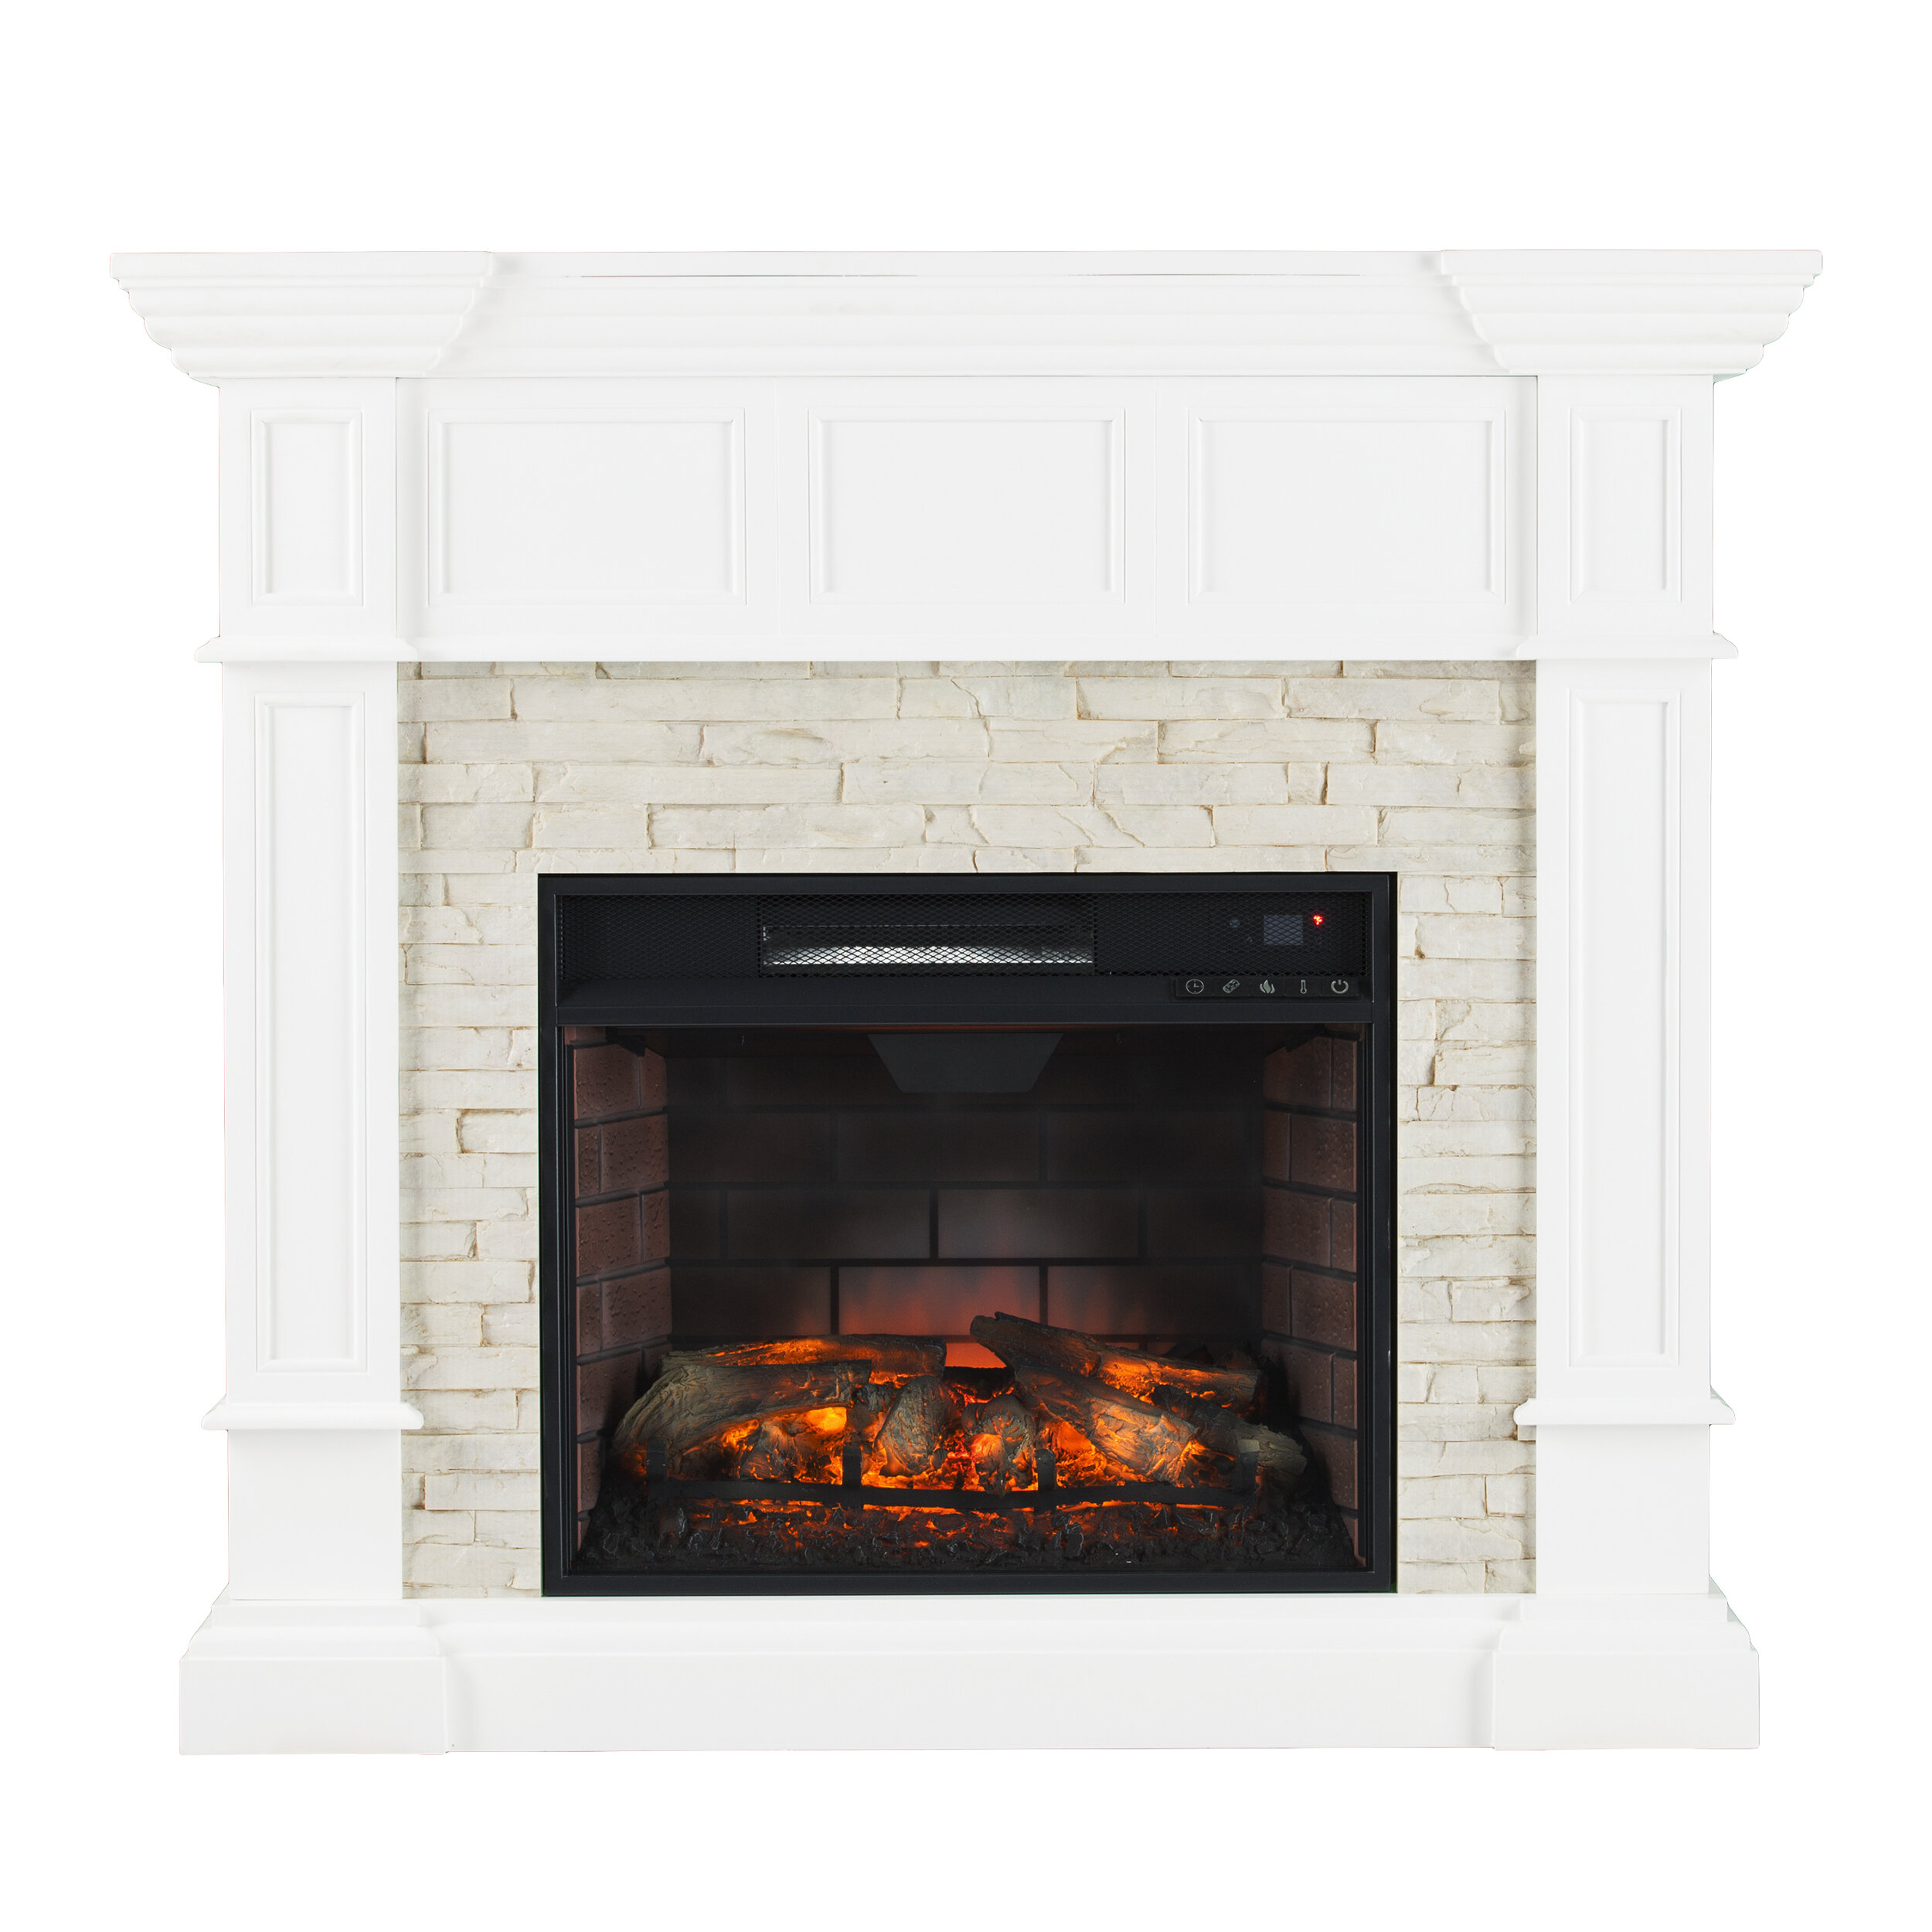 mocha free electric media lincolnville havenside shipping fireplace tv overstock home garden product grey today stand center